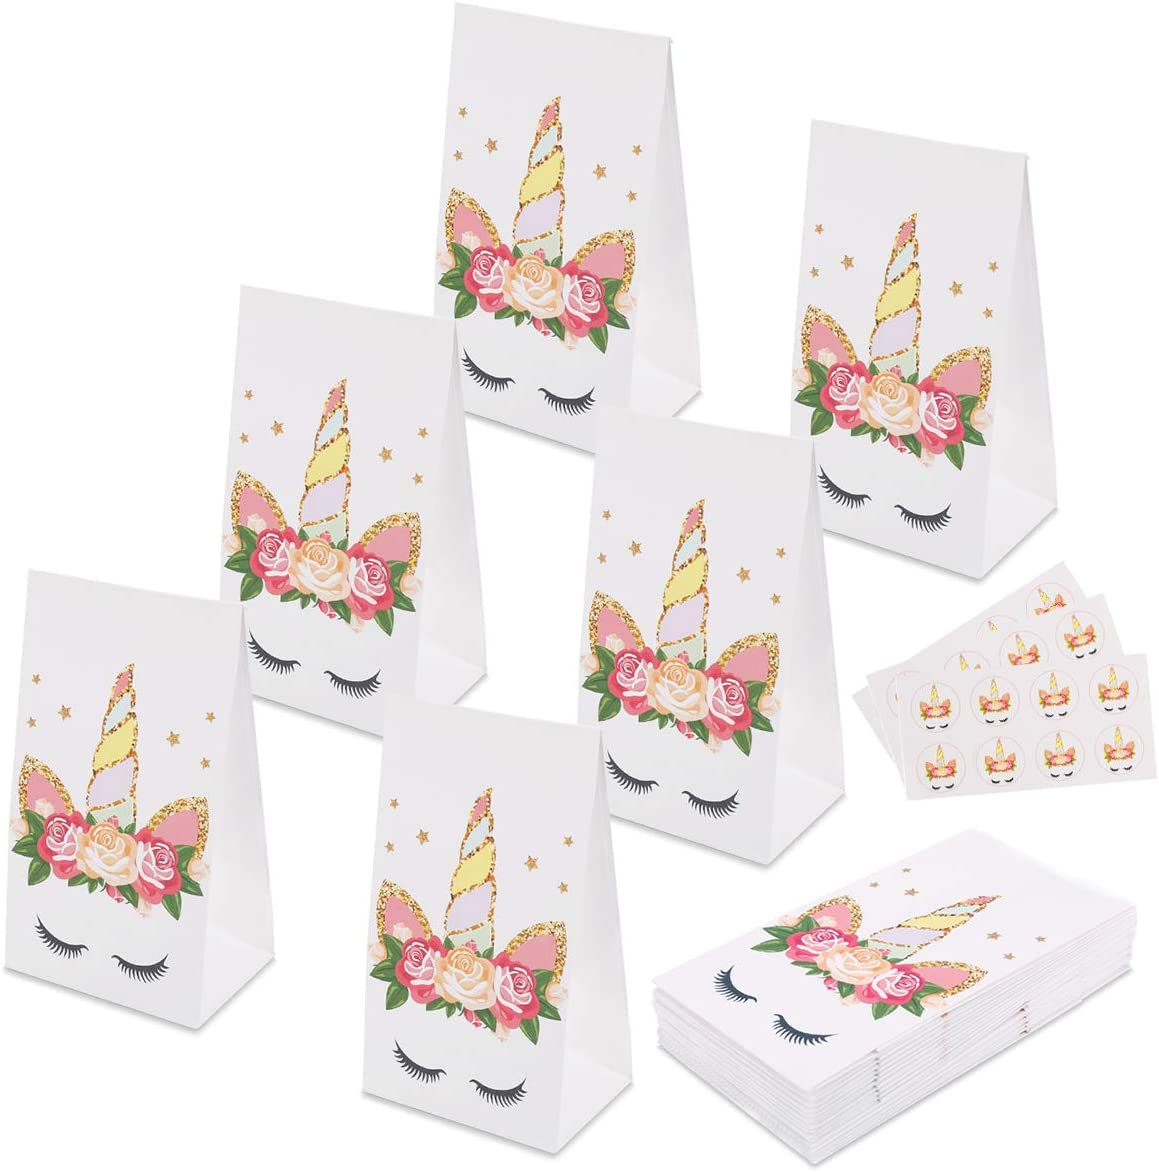 Unicorn Party Favor Bags for 24 Guests